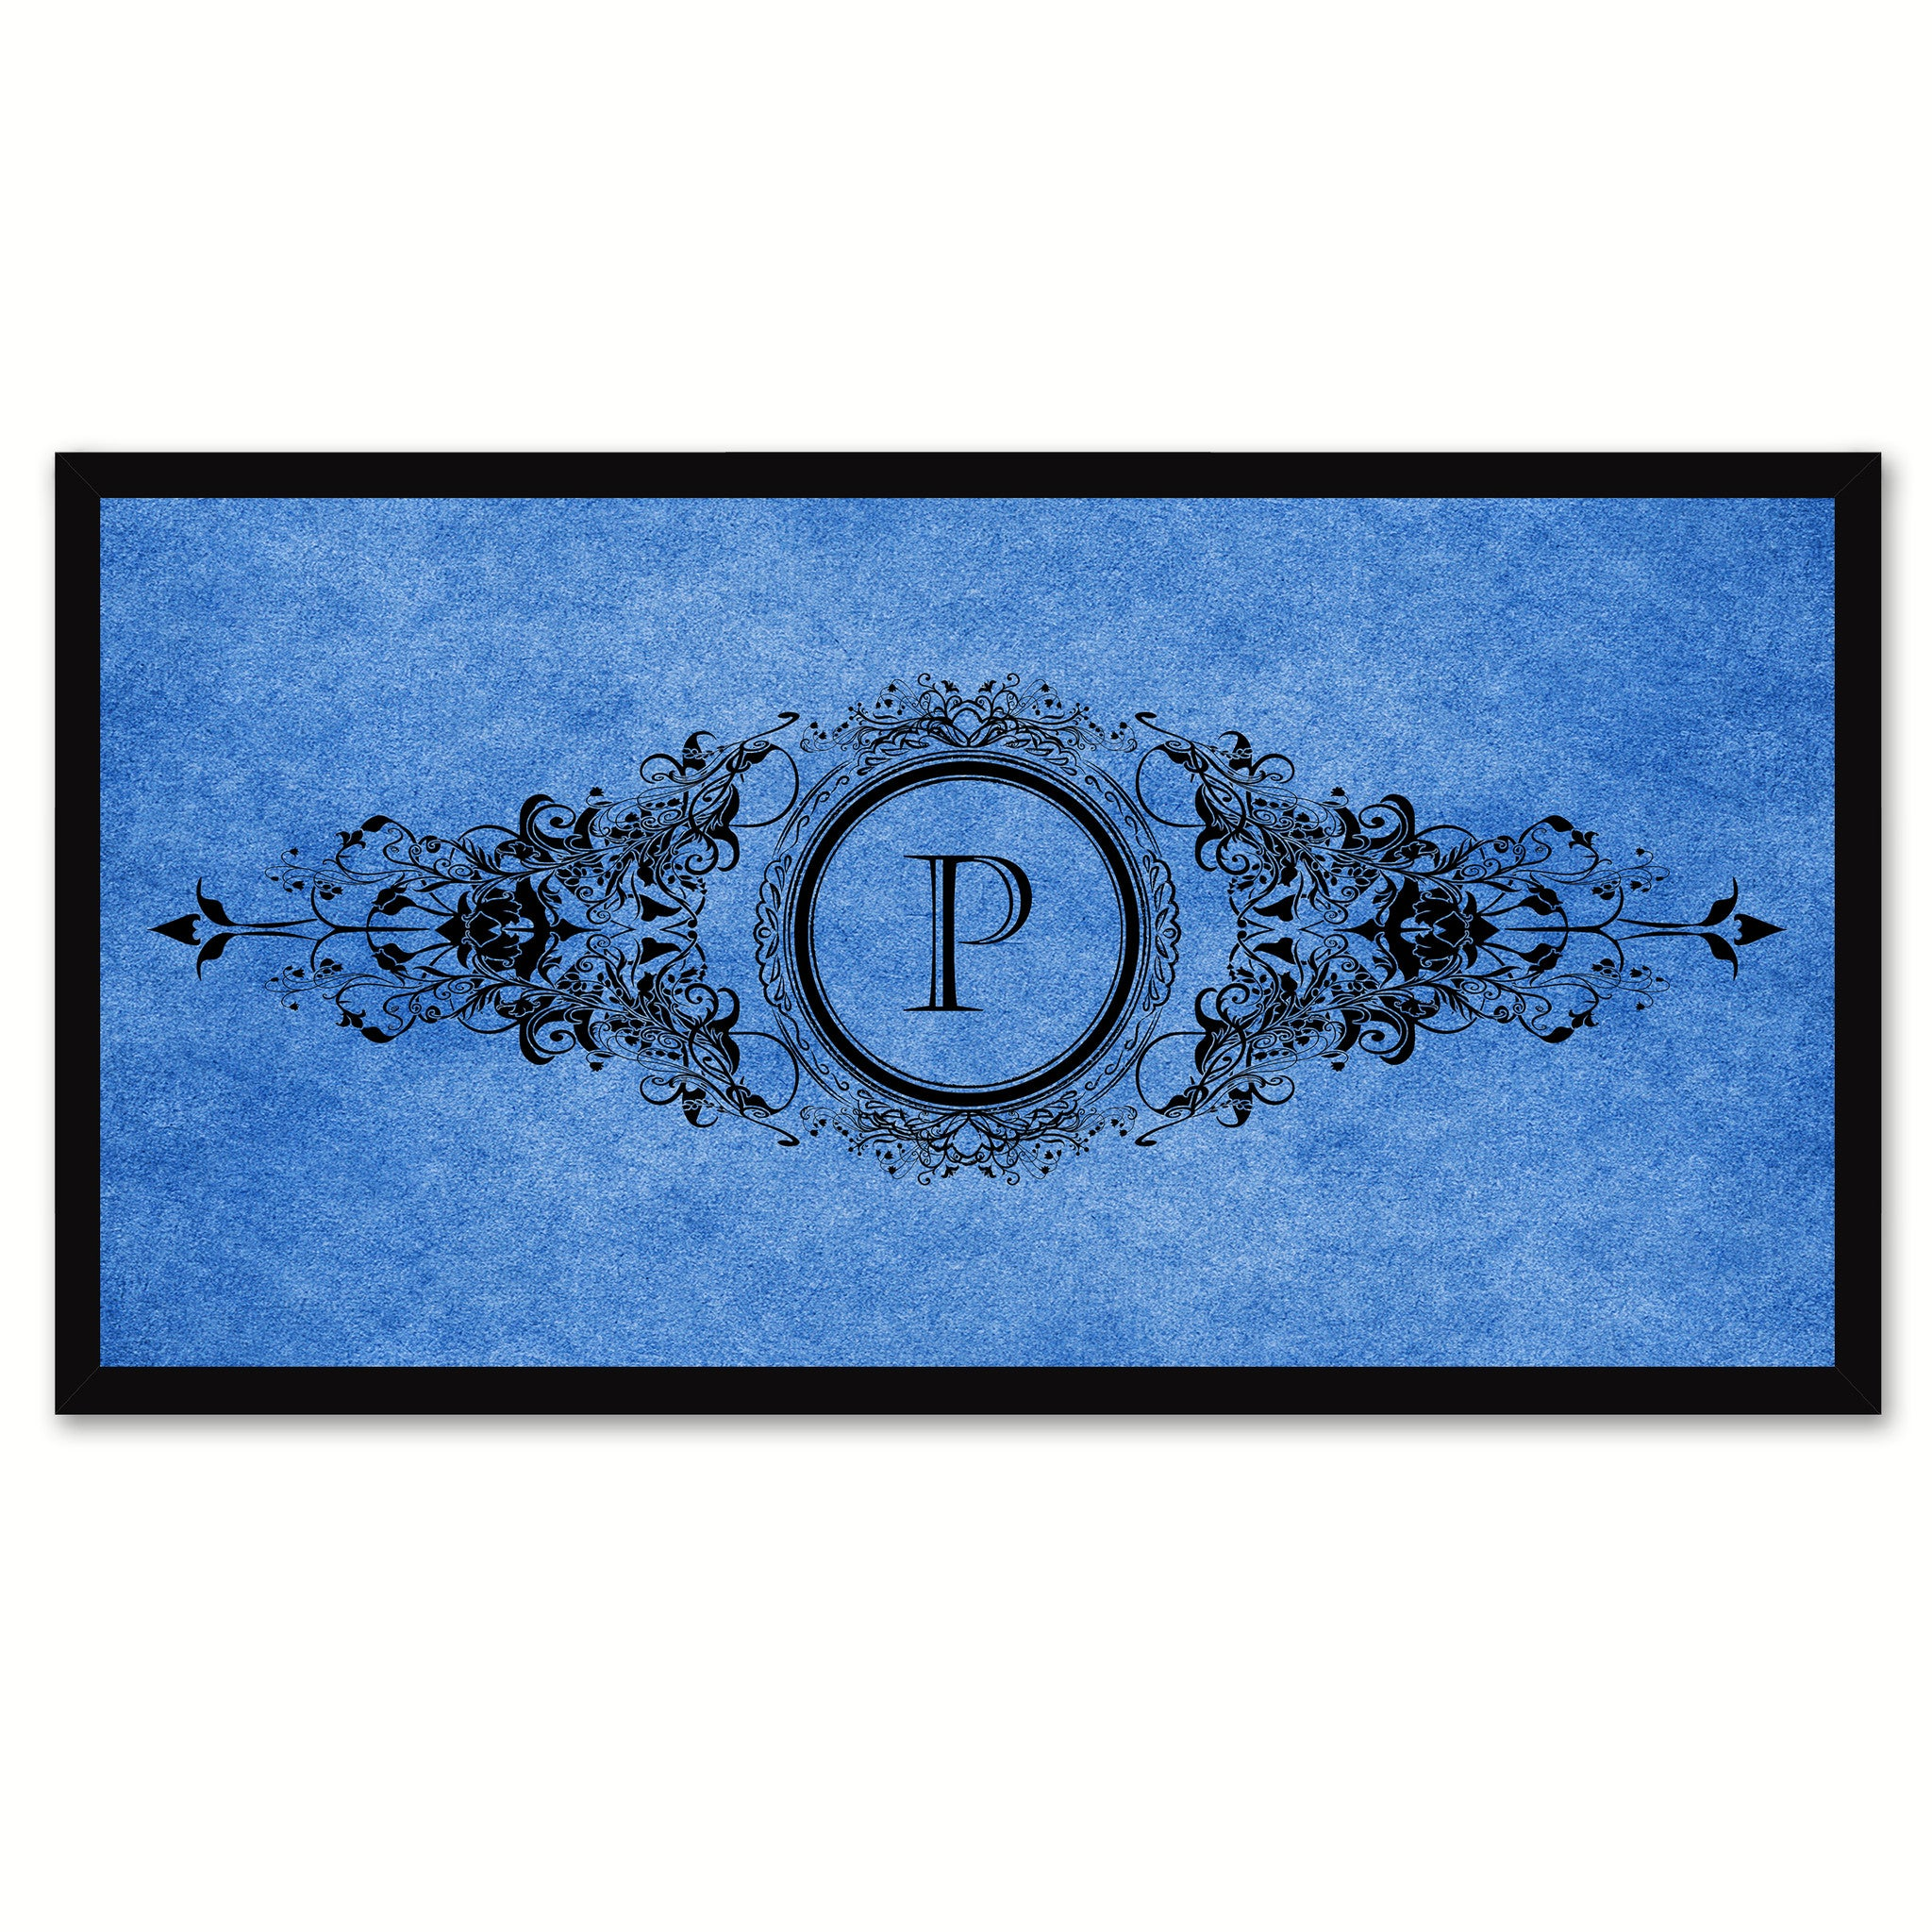 Alphabet Letter P Blue Canvas Print, Black Custom Frame